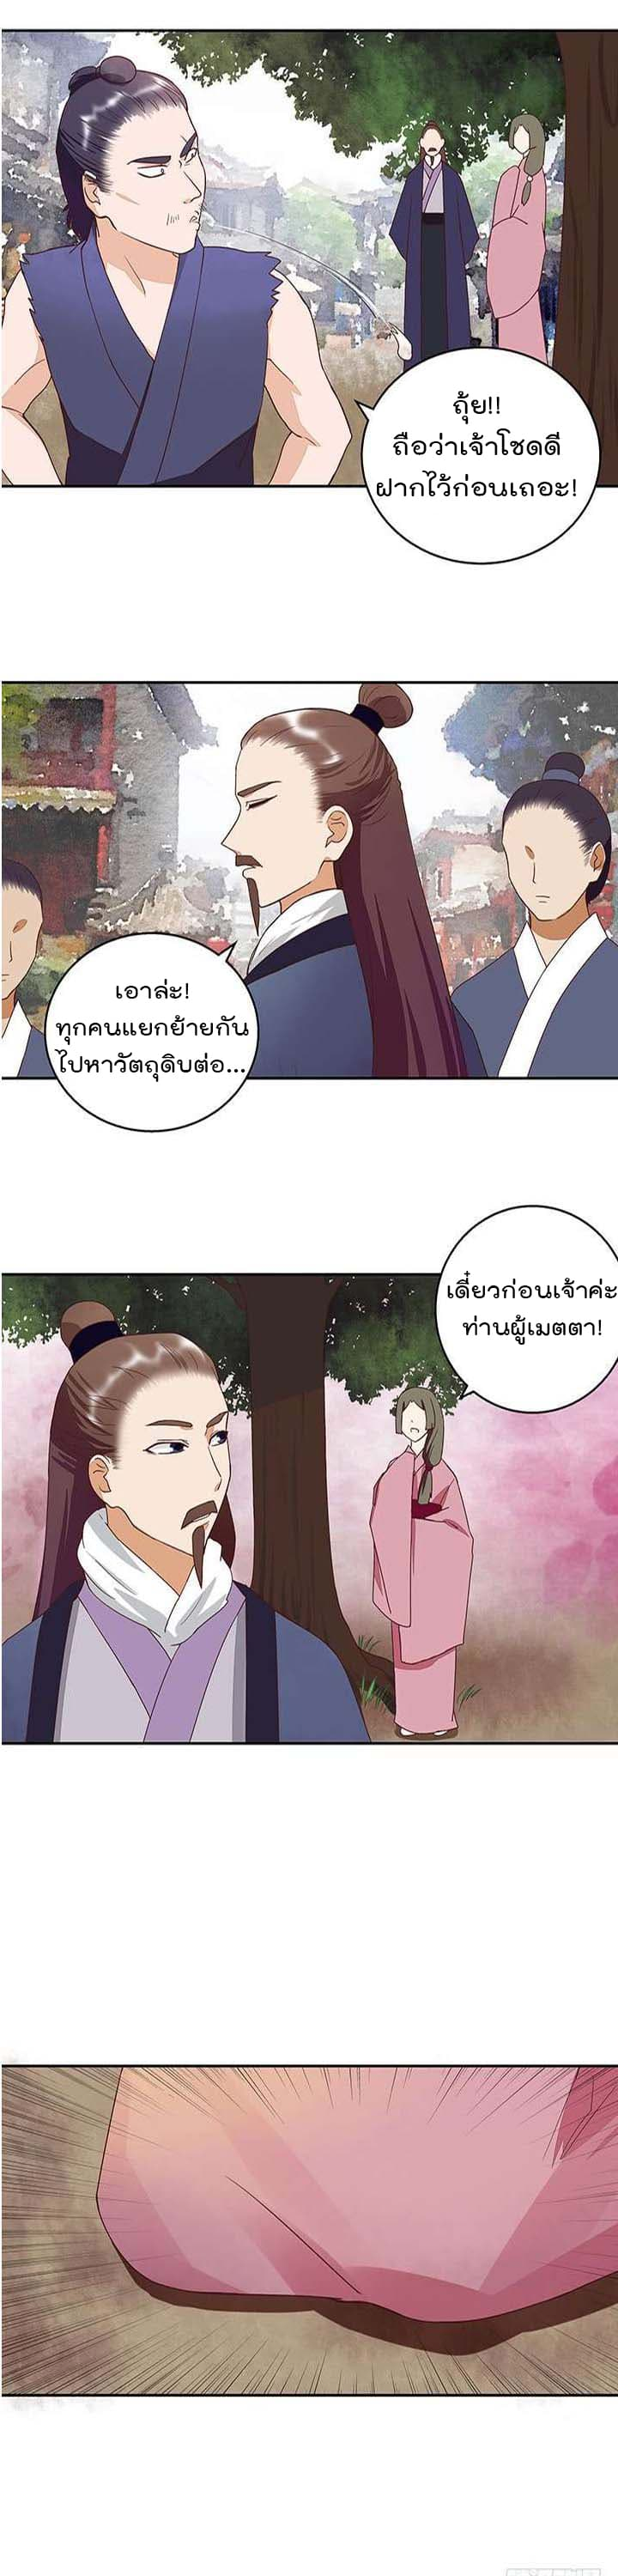 The Bloody Merchant Empress and the Cold Husband s Forceful Doting - หน้า 7